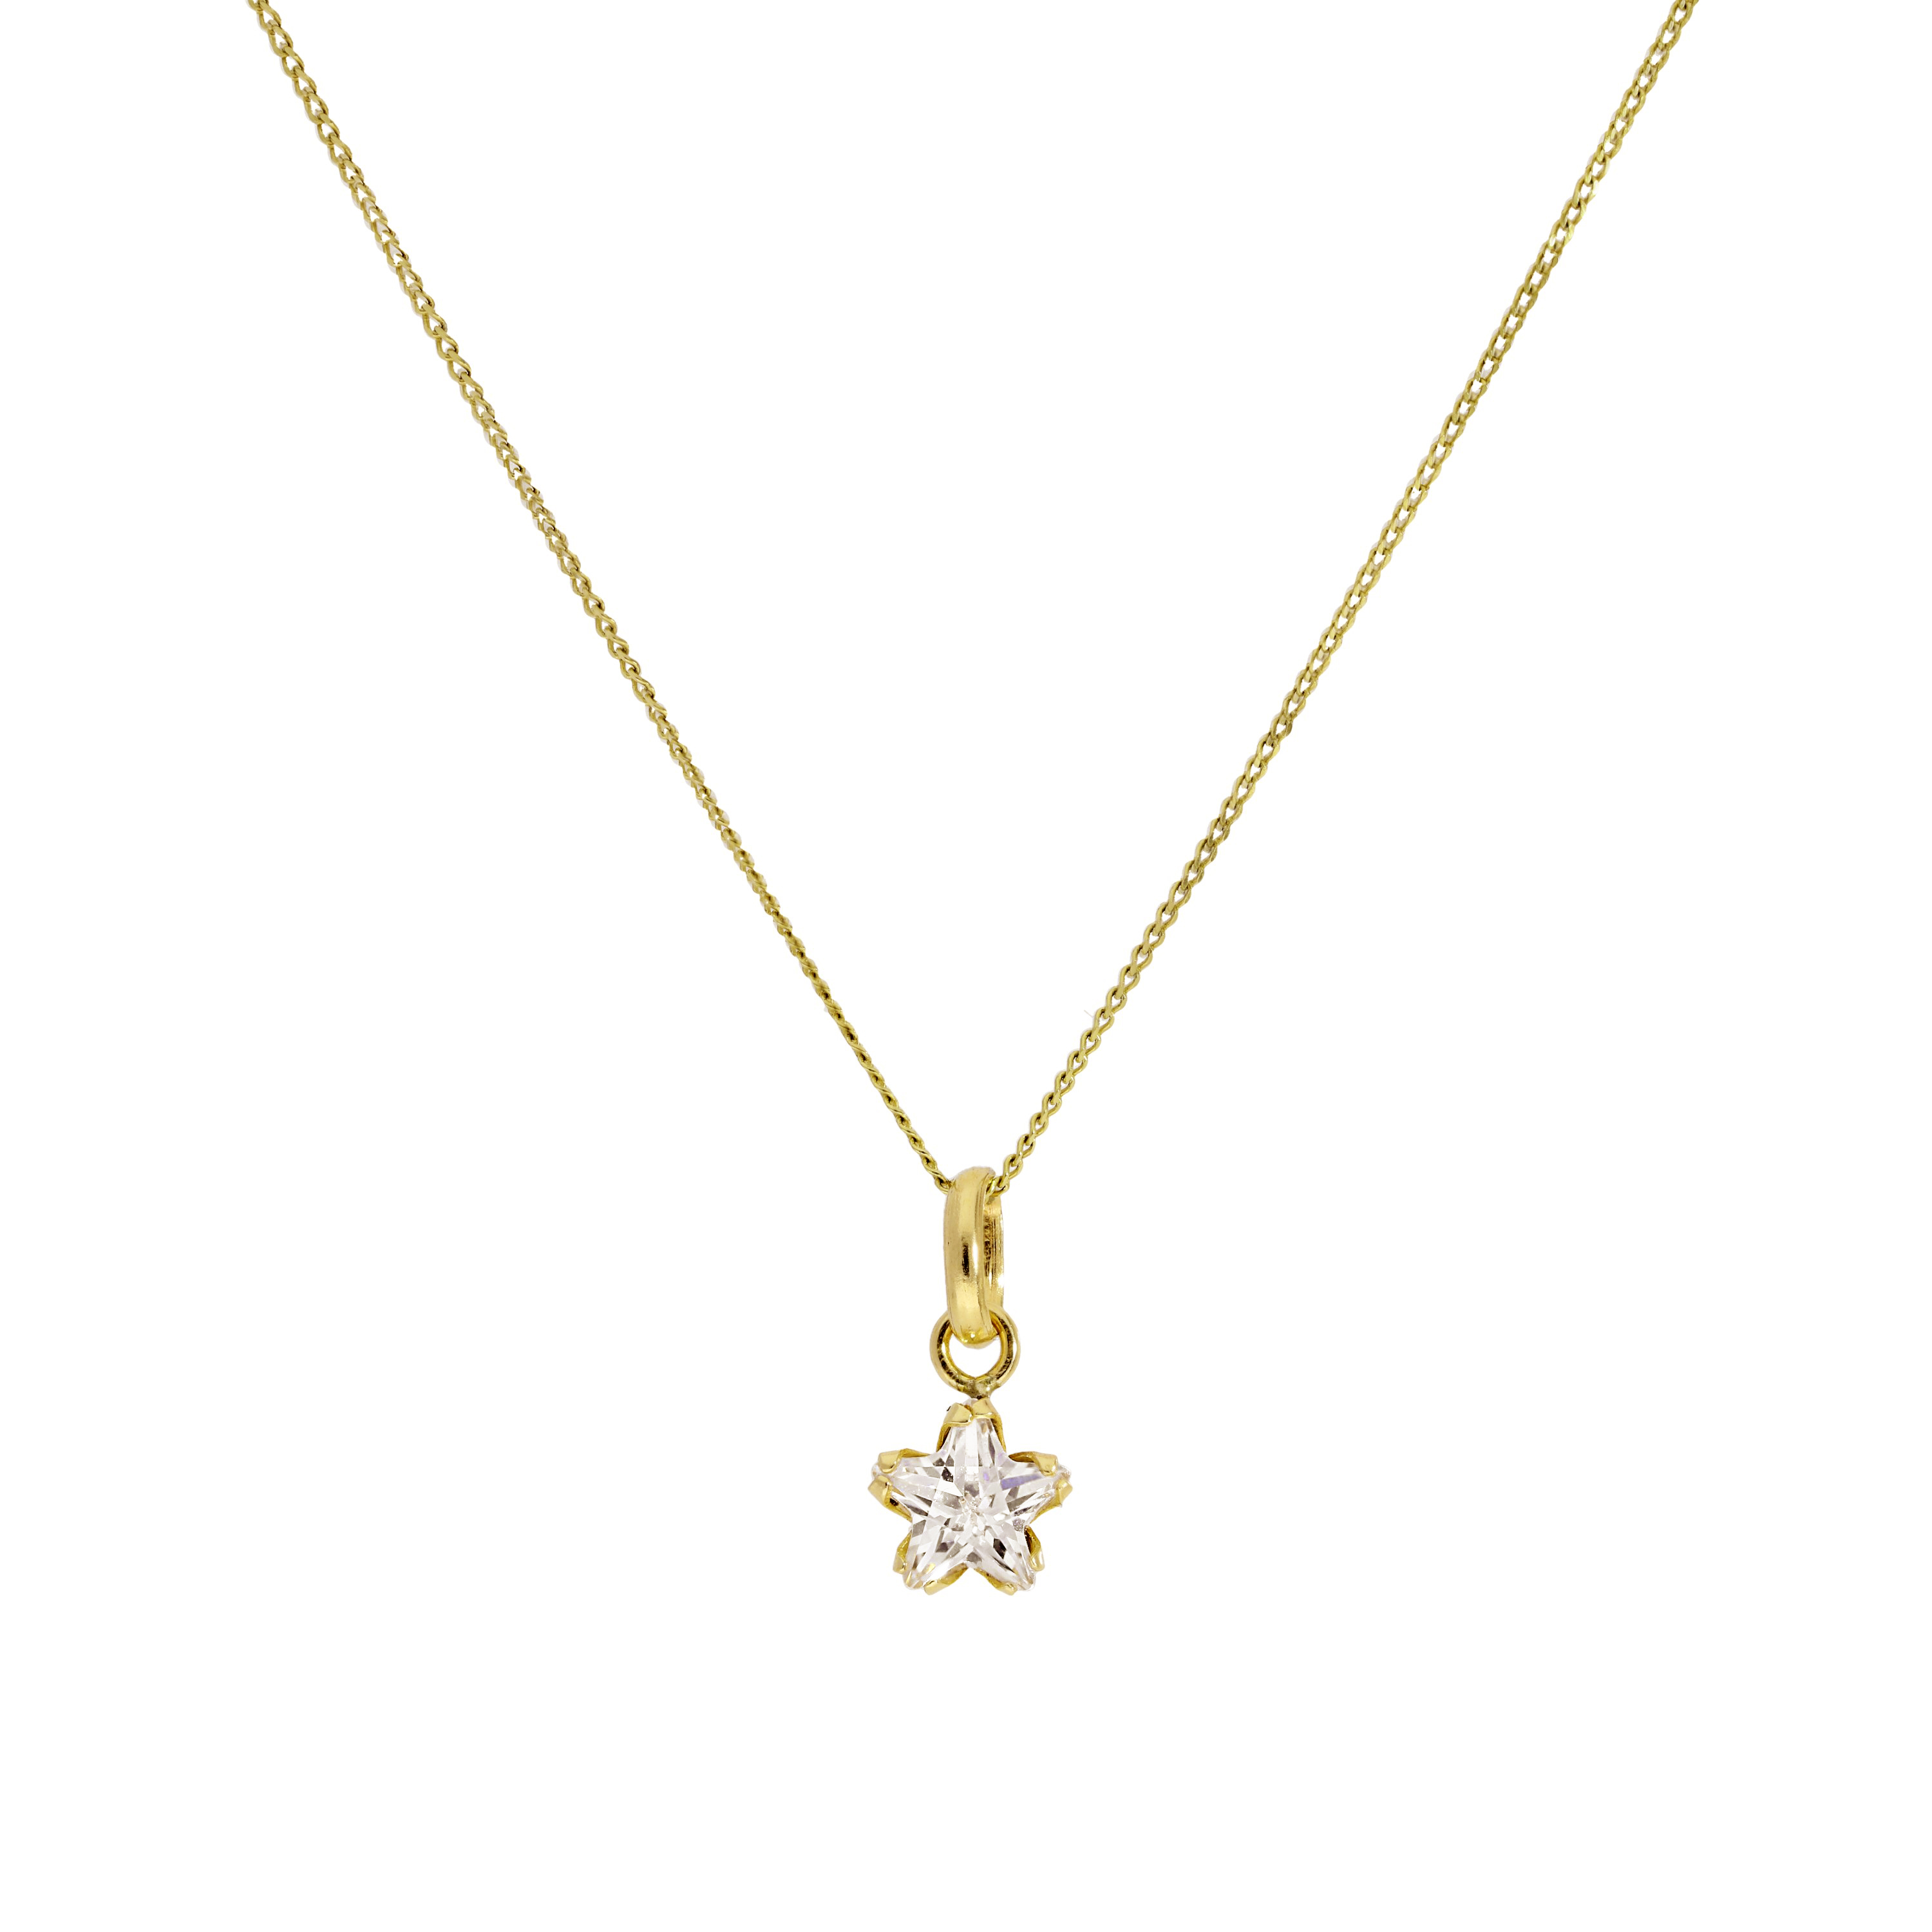 Real 375 9ct Gold /& Black CZ Crystal Owl Pendant on Chain 16-20 Inches Birds